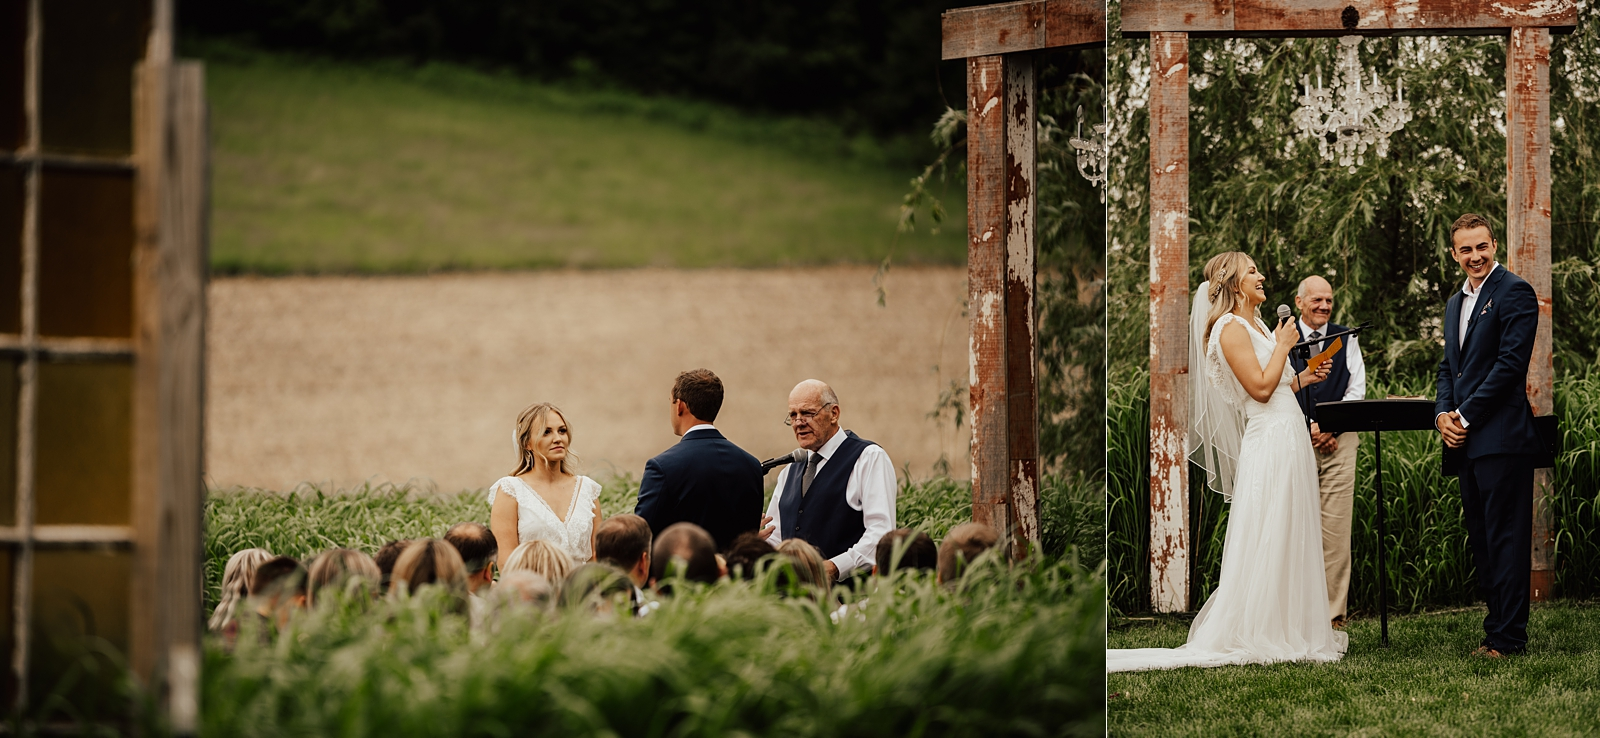 Vanessa & Michael Boho Chic Hidden Meadow & Barn Wedding in Pepin, WI_0573.jpg